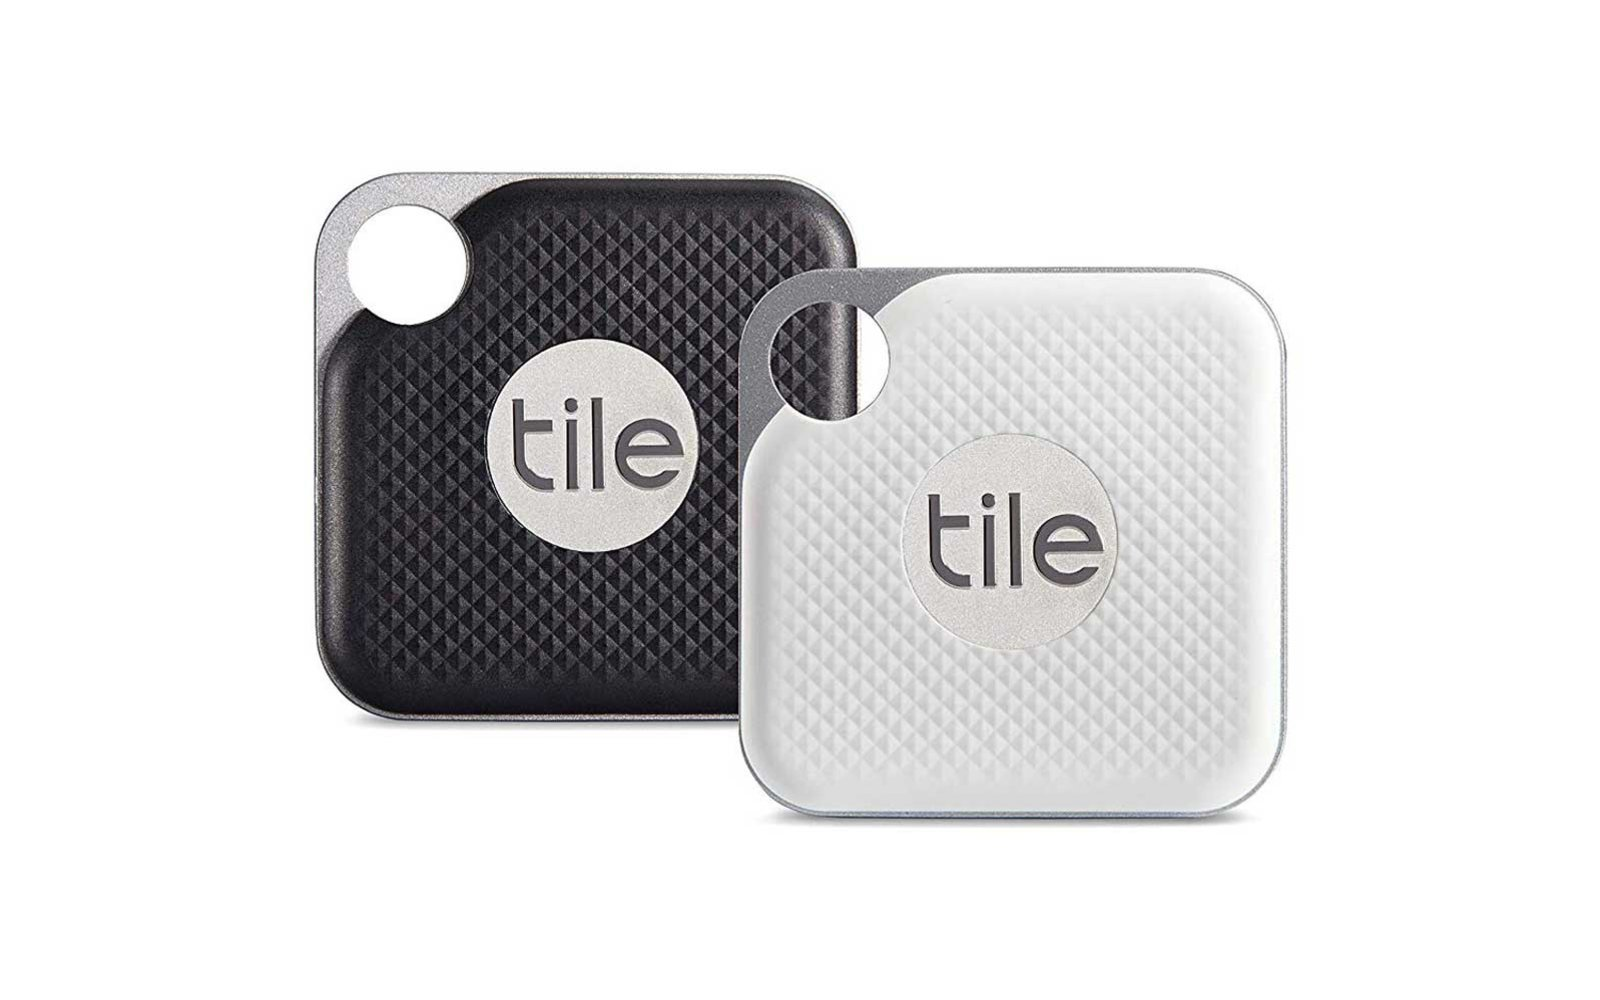 Gifts to get on Amazon Tile Pro with Replaceable Battery